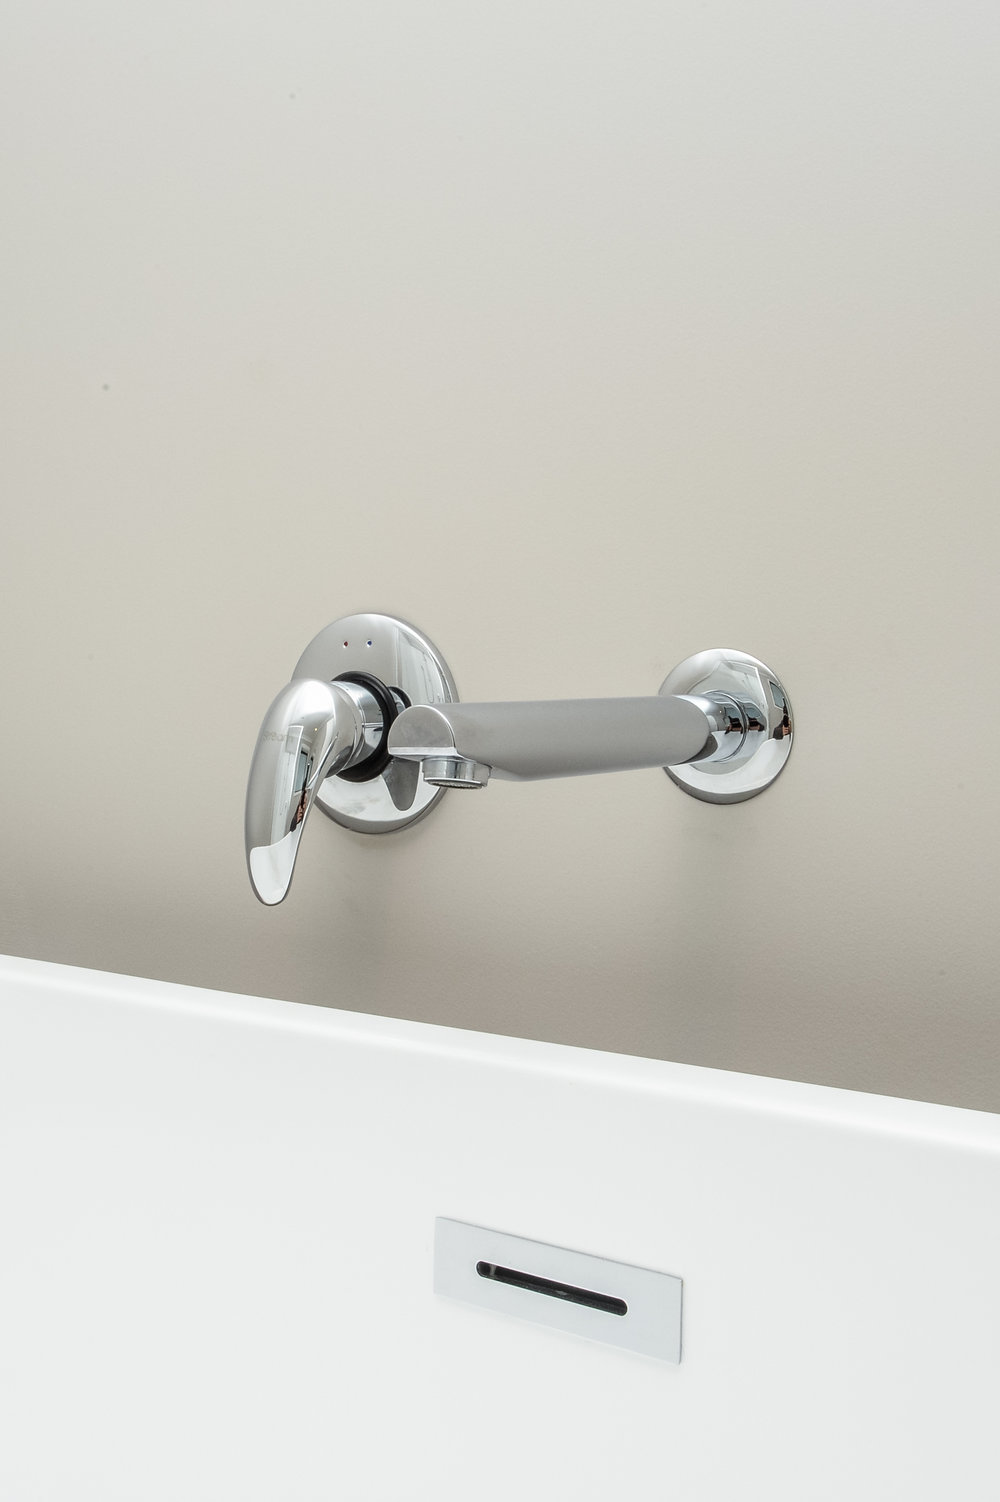 bath spout and mixer.jpg